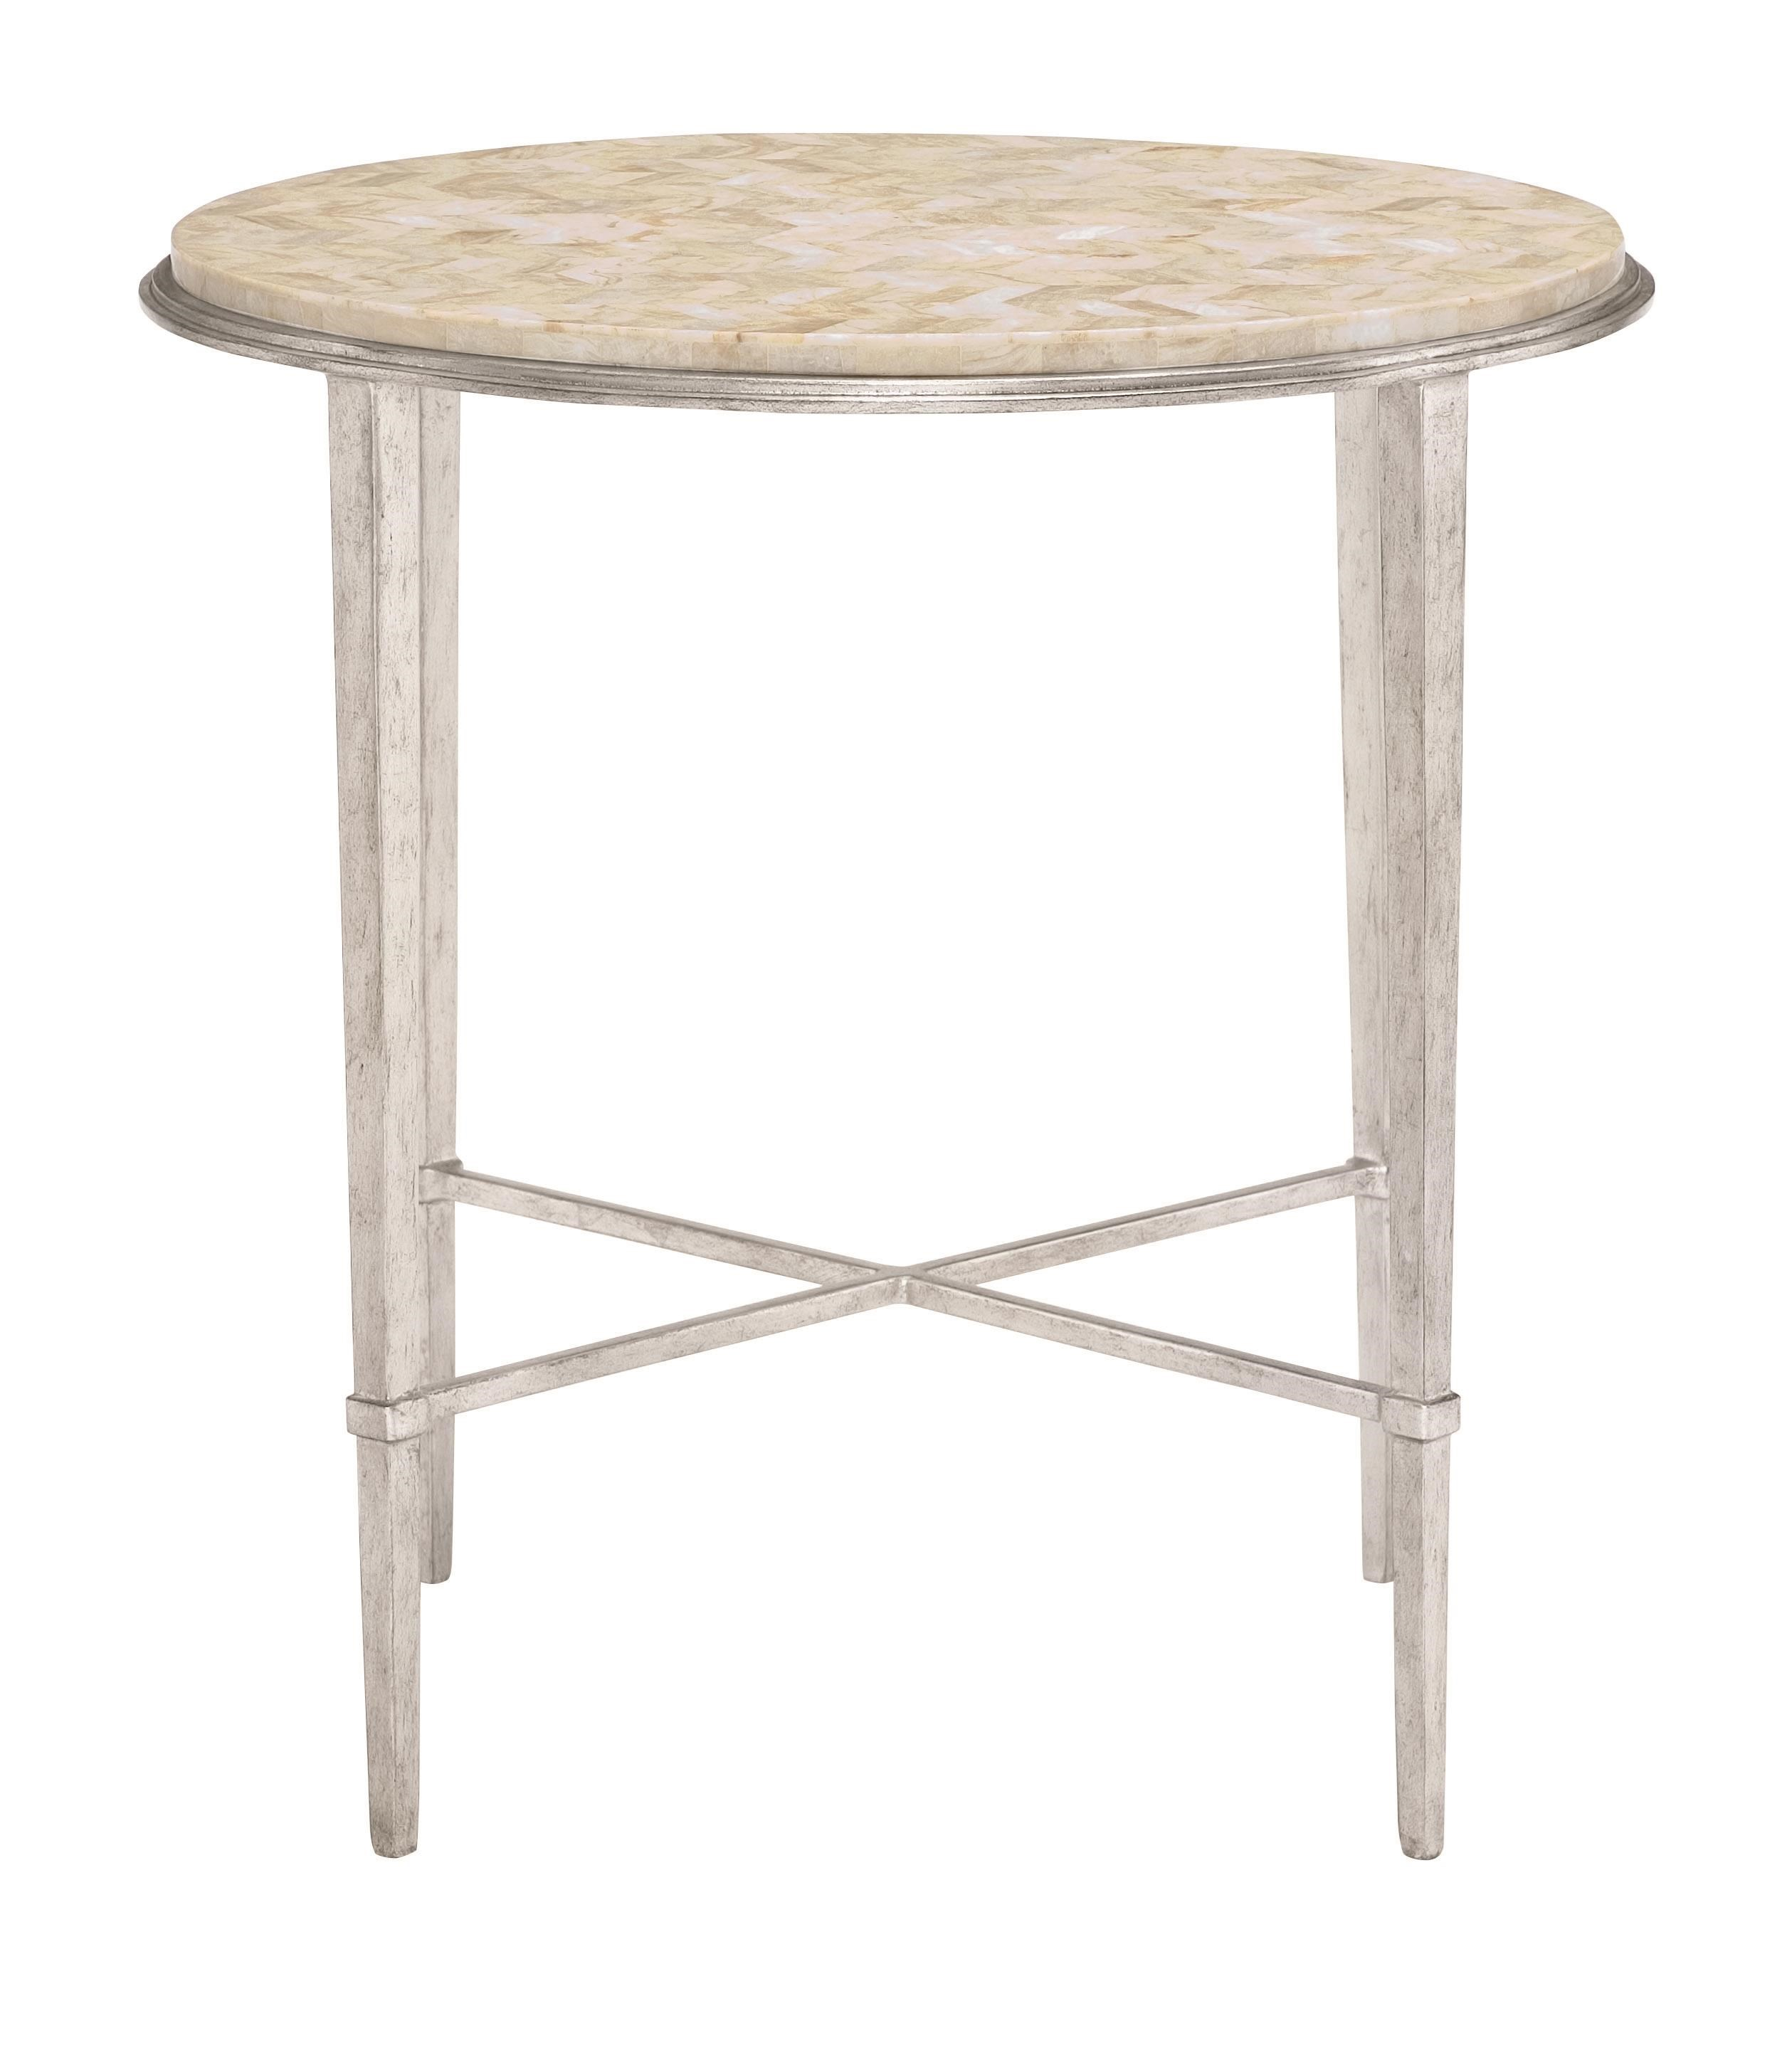 Bernhardt Solange Solange Round Chair Side Table - Item Number: 148028389